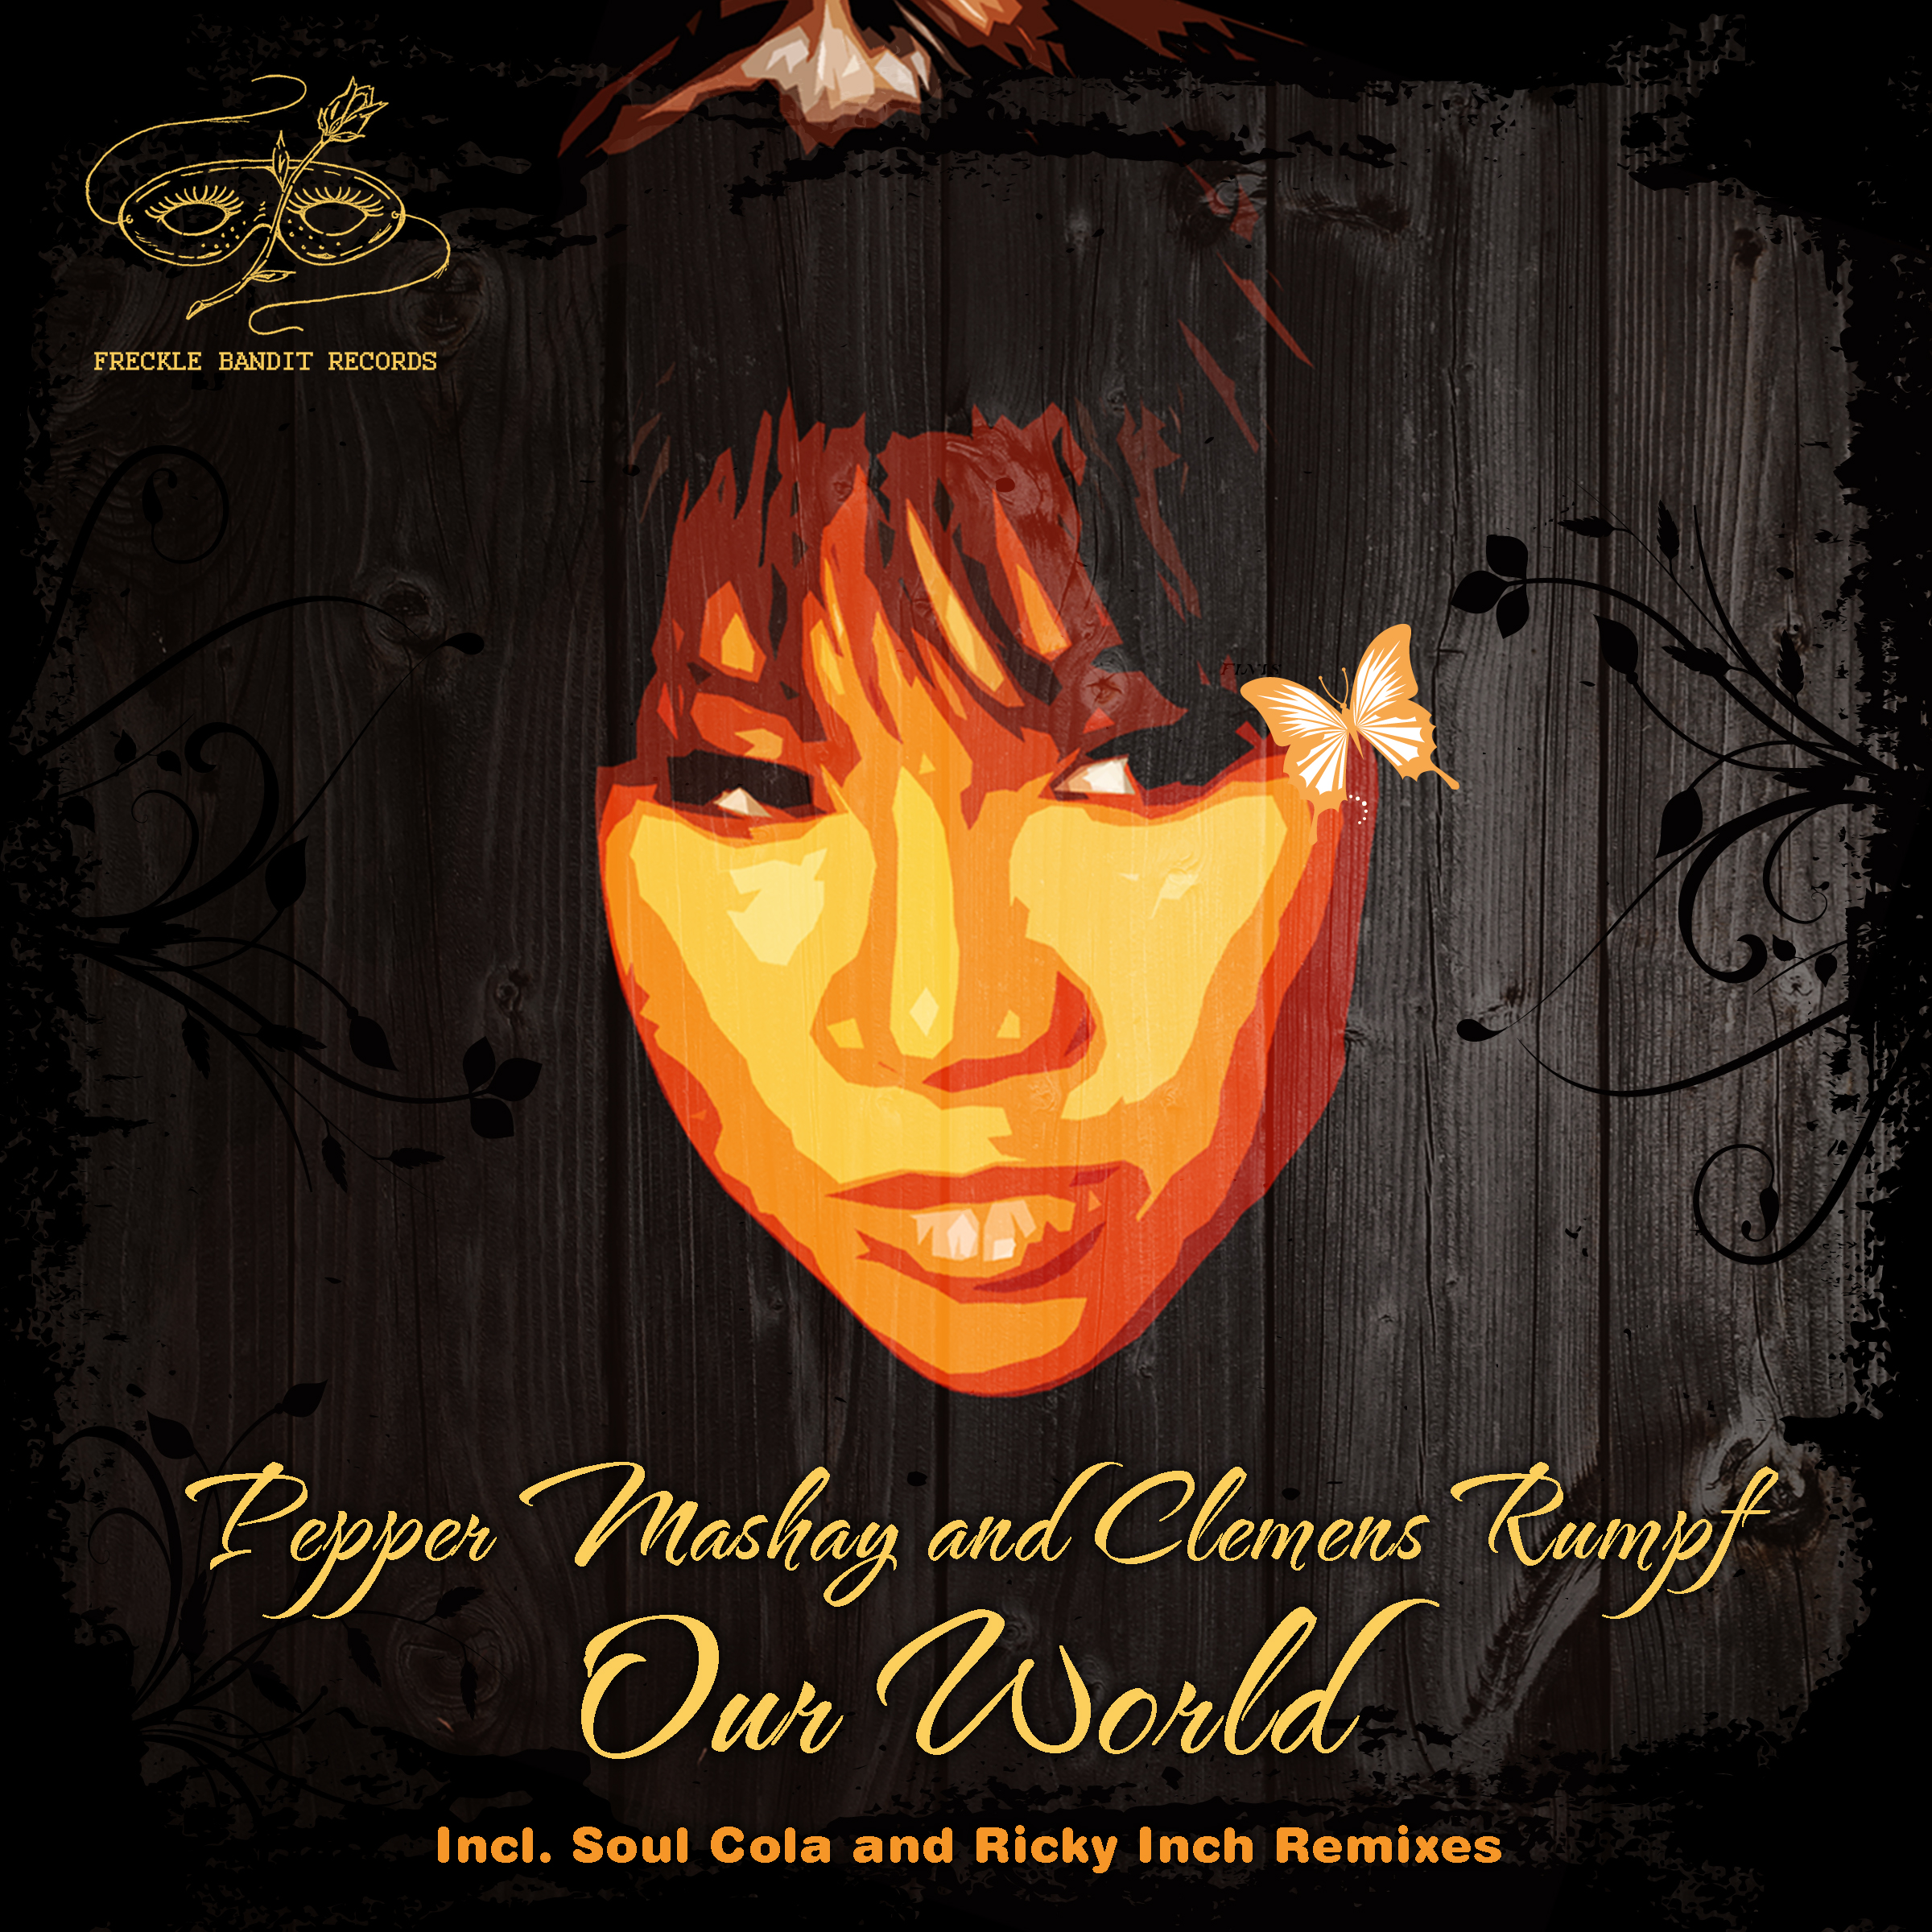 "New Music: Pepper MaShay & Clemens Rumpf: ""Our World"" (CR's Single Lyric Edit)"